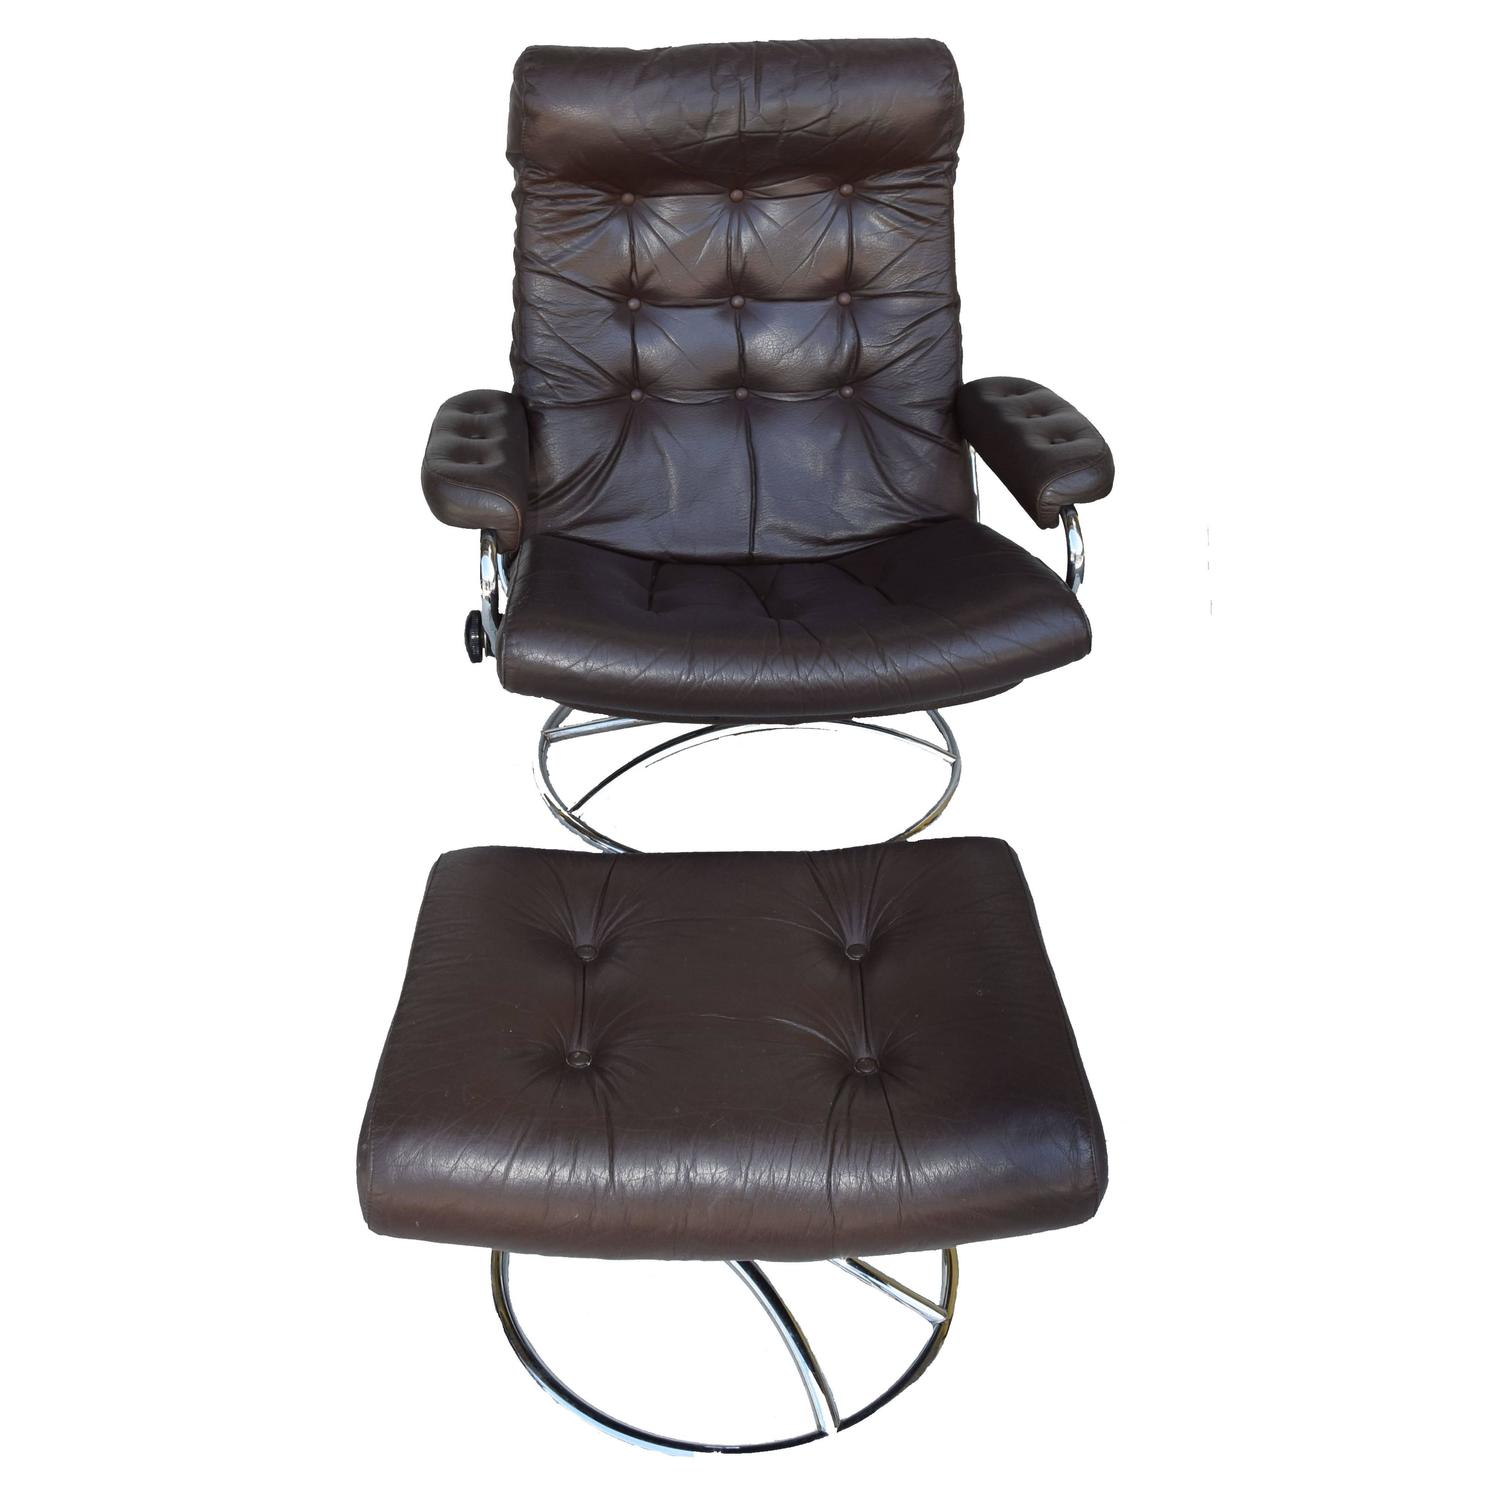 stressless chair sale seat covers for chairs with arms ekornes and ottoman 1972 at 1stdibs